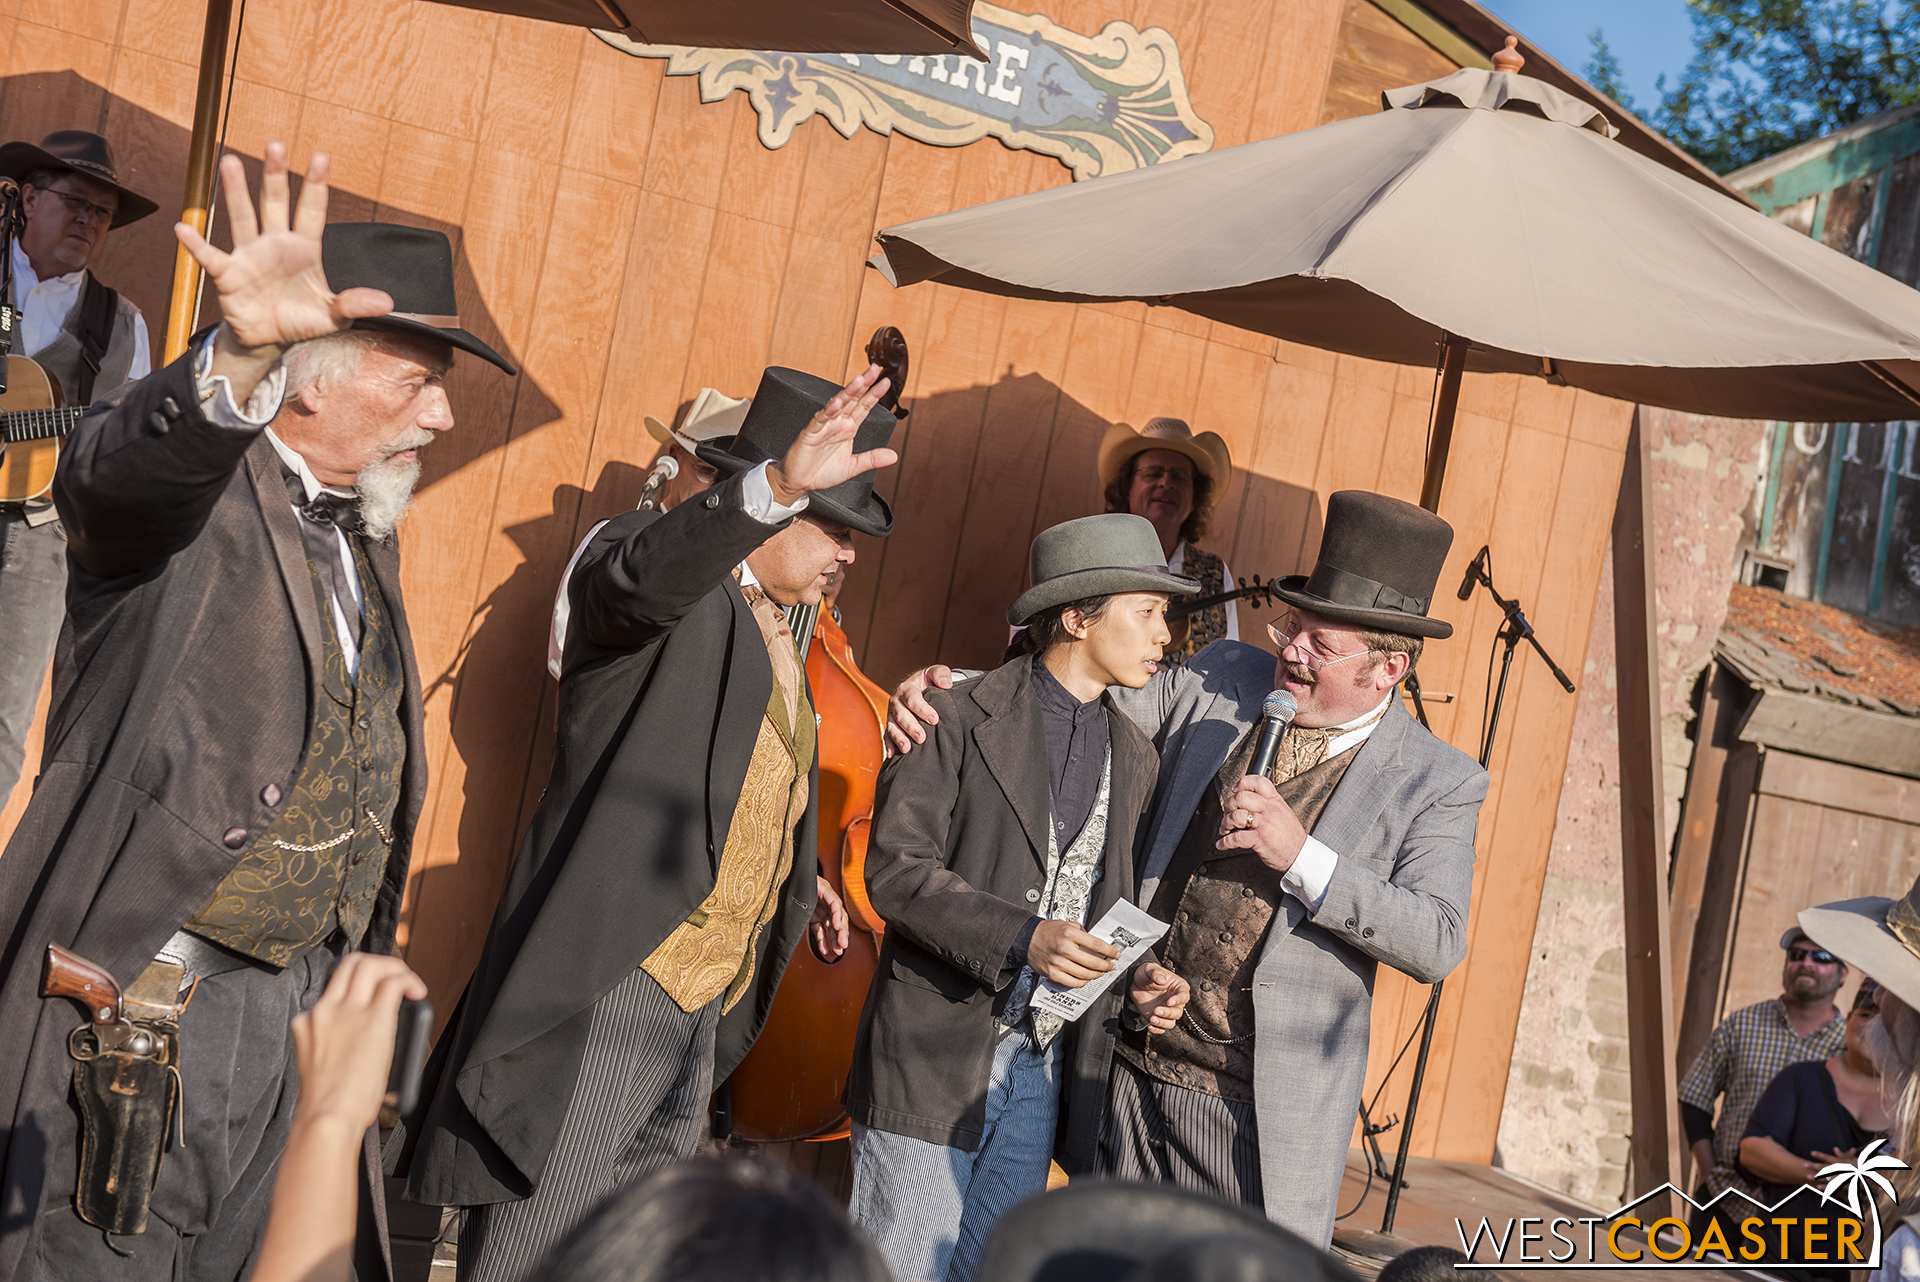 As Judge Bean and Mayor Parnell call for quiet, Deputy Mayor Howell asks Lee how he feels about being revealed as a descendant of a town founder and rightful owner of the deed and town of Calico.